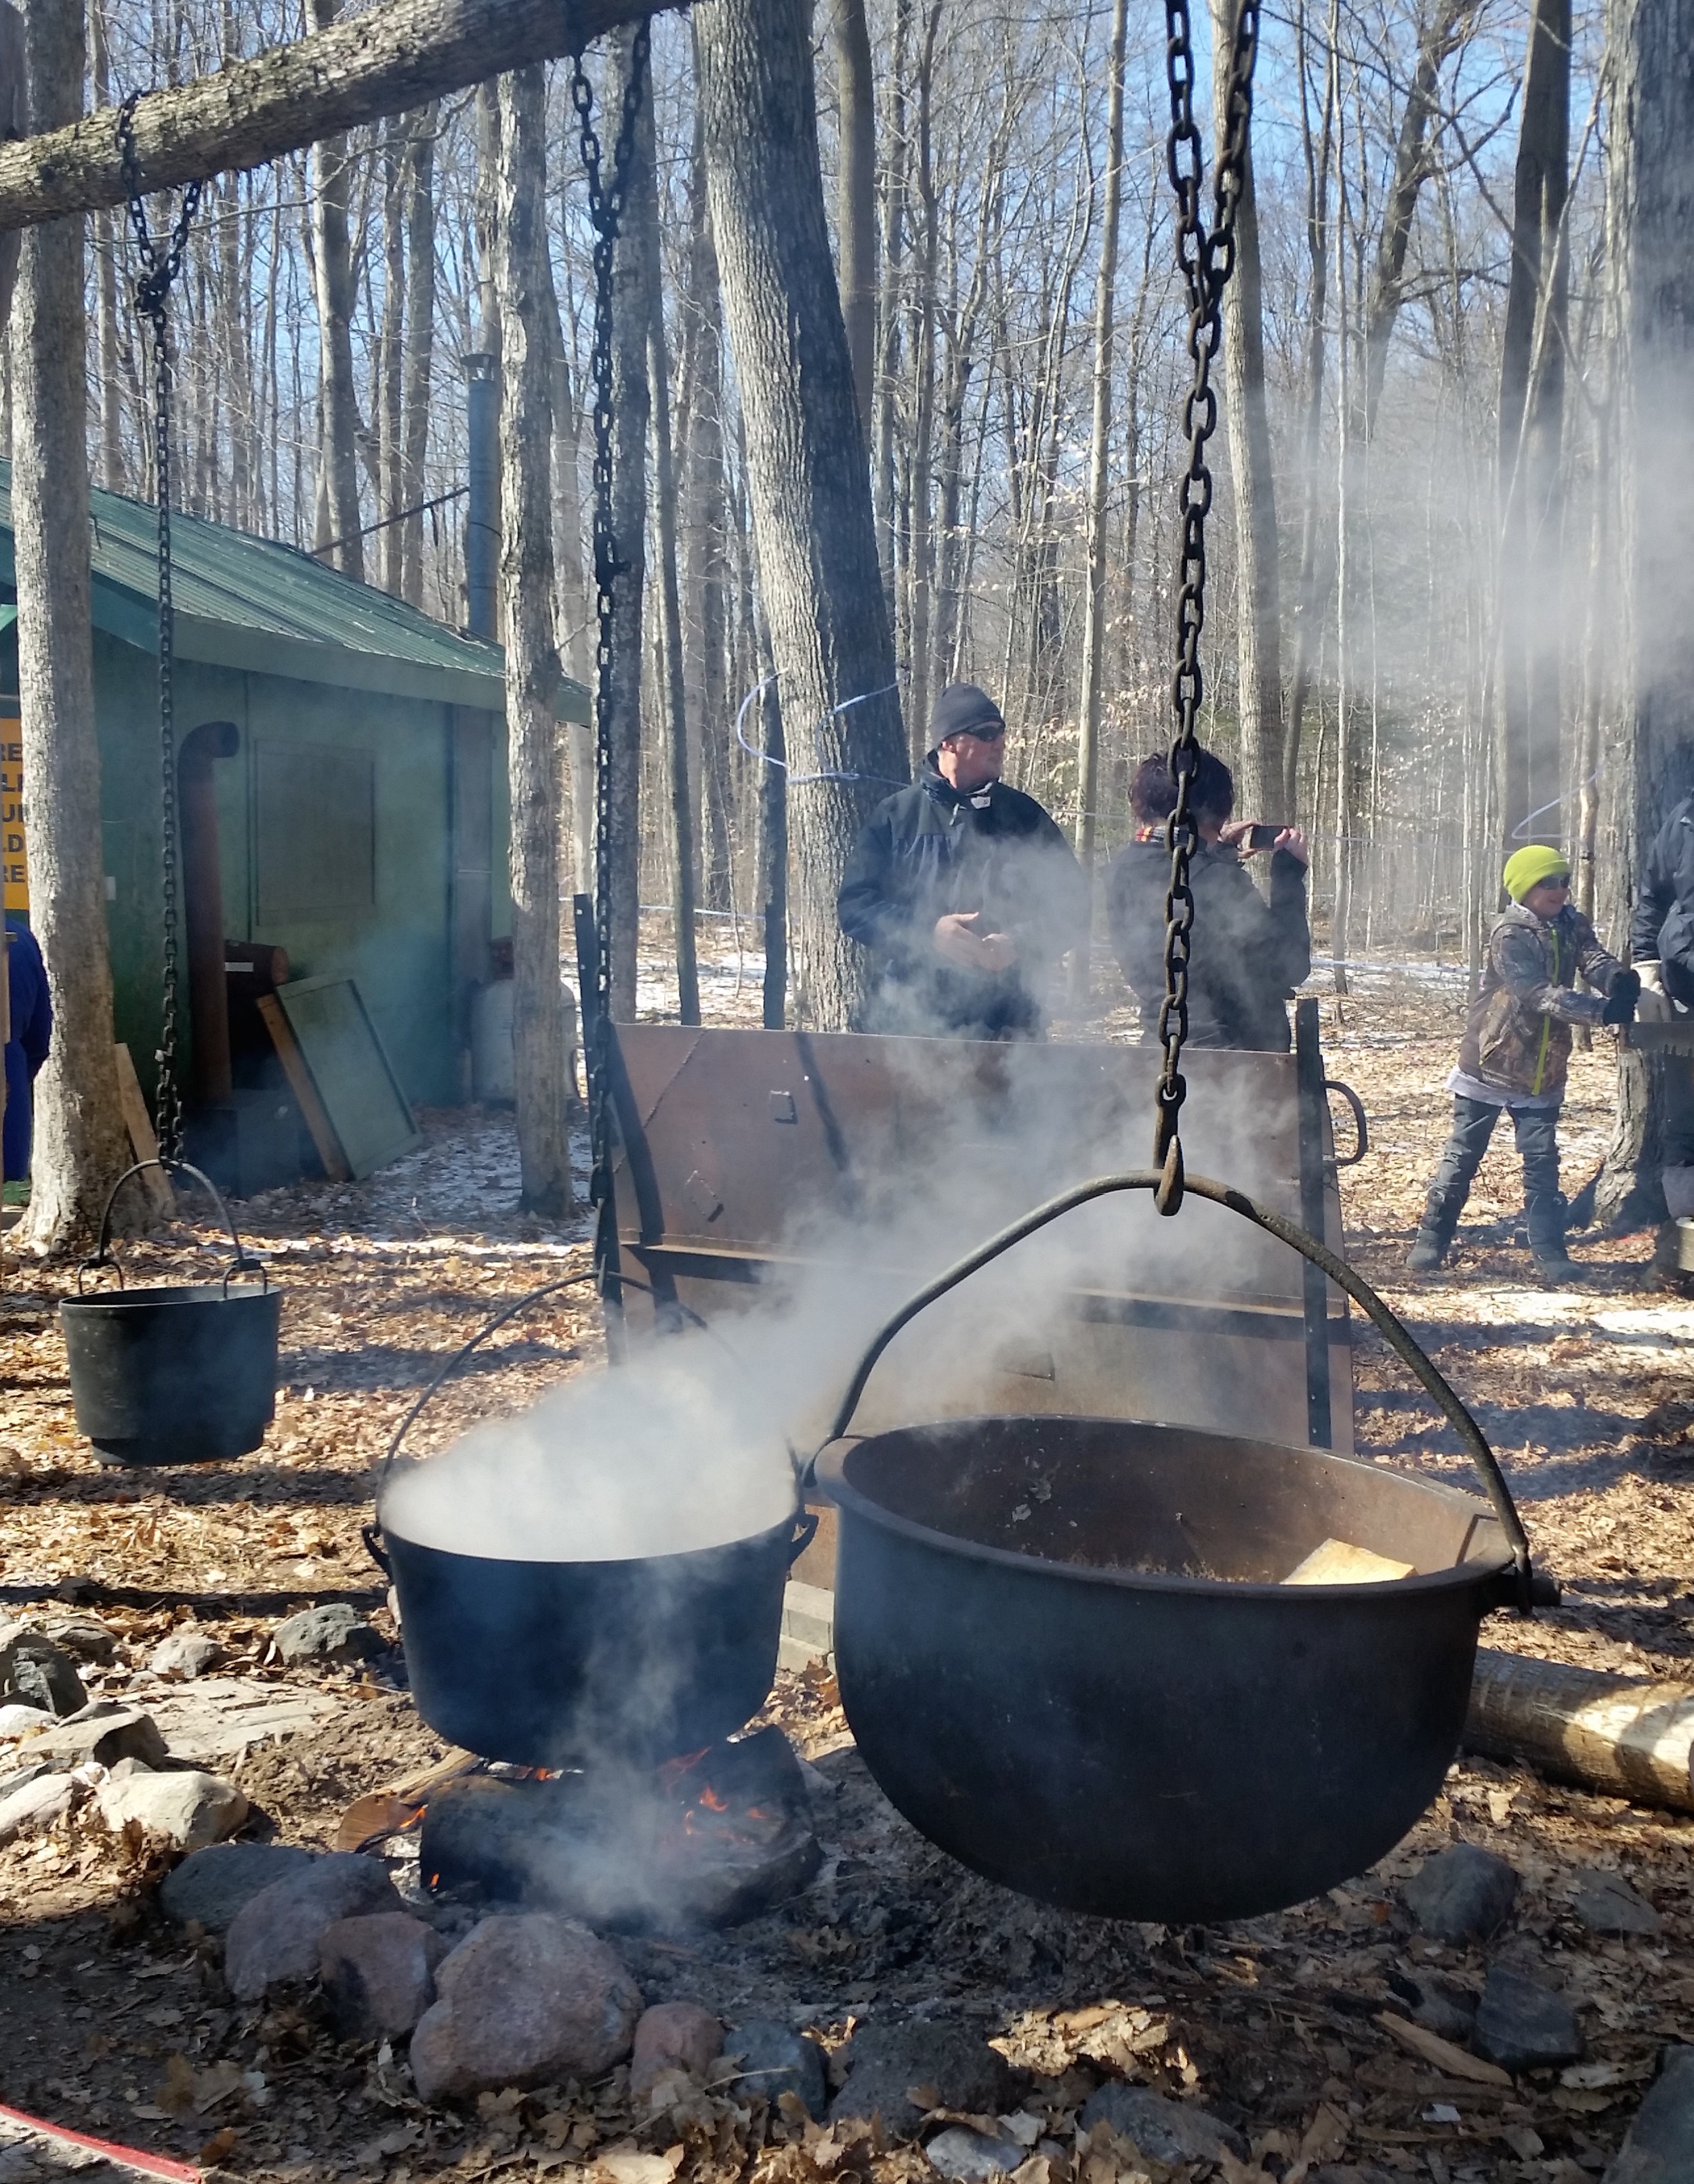 Boiling maple sap over an open fire.